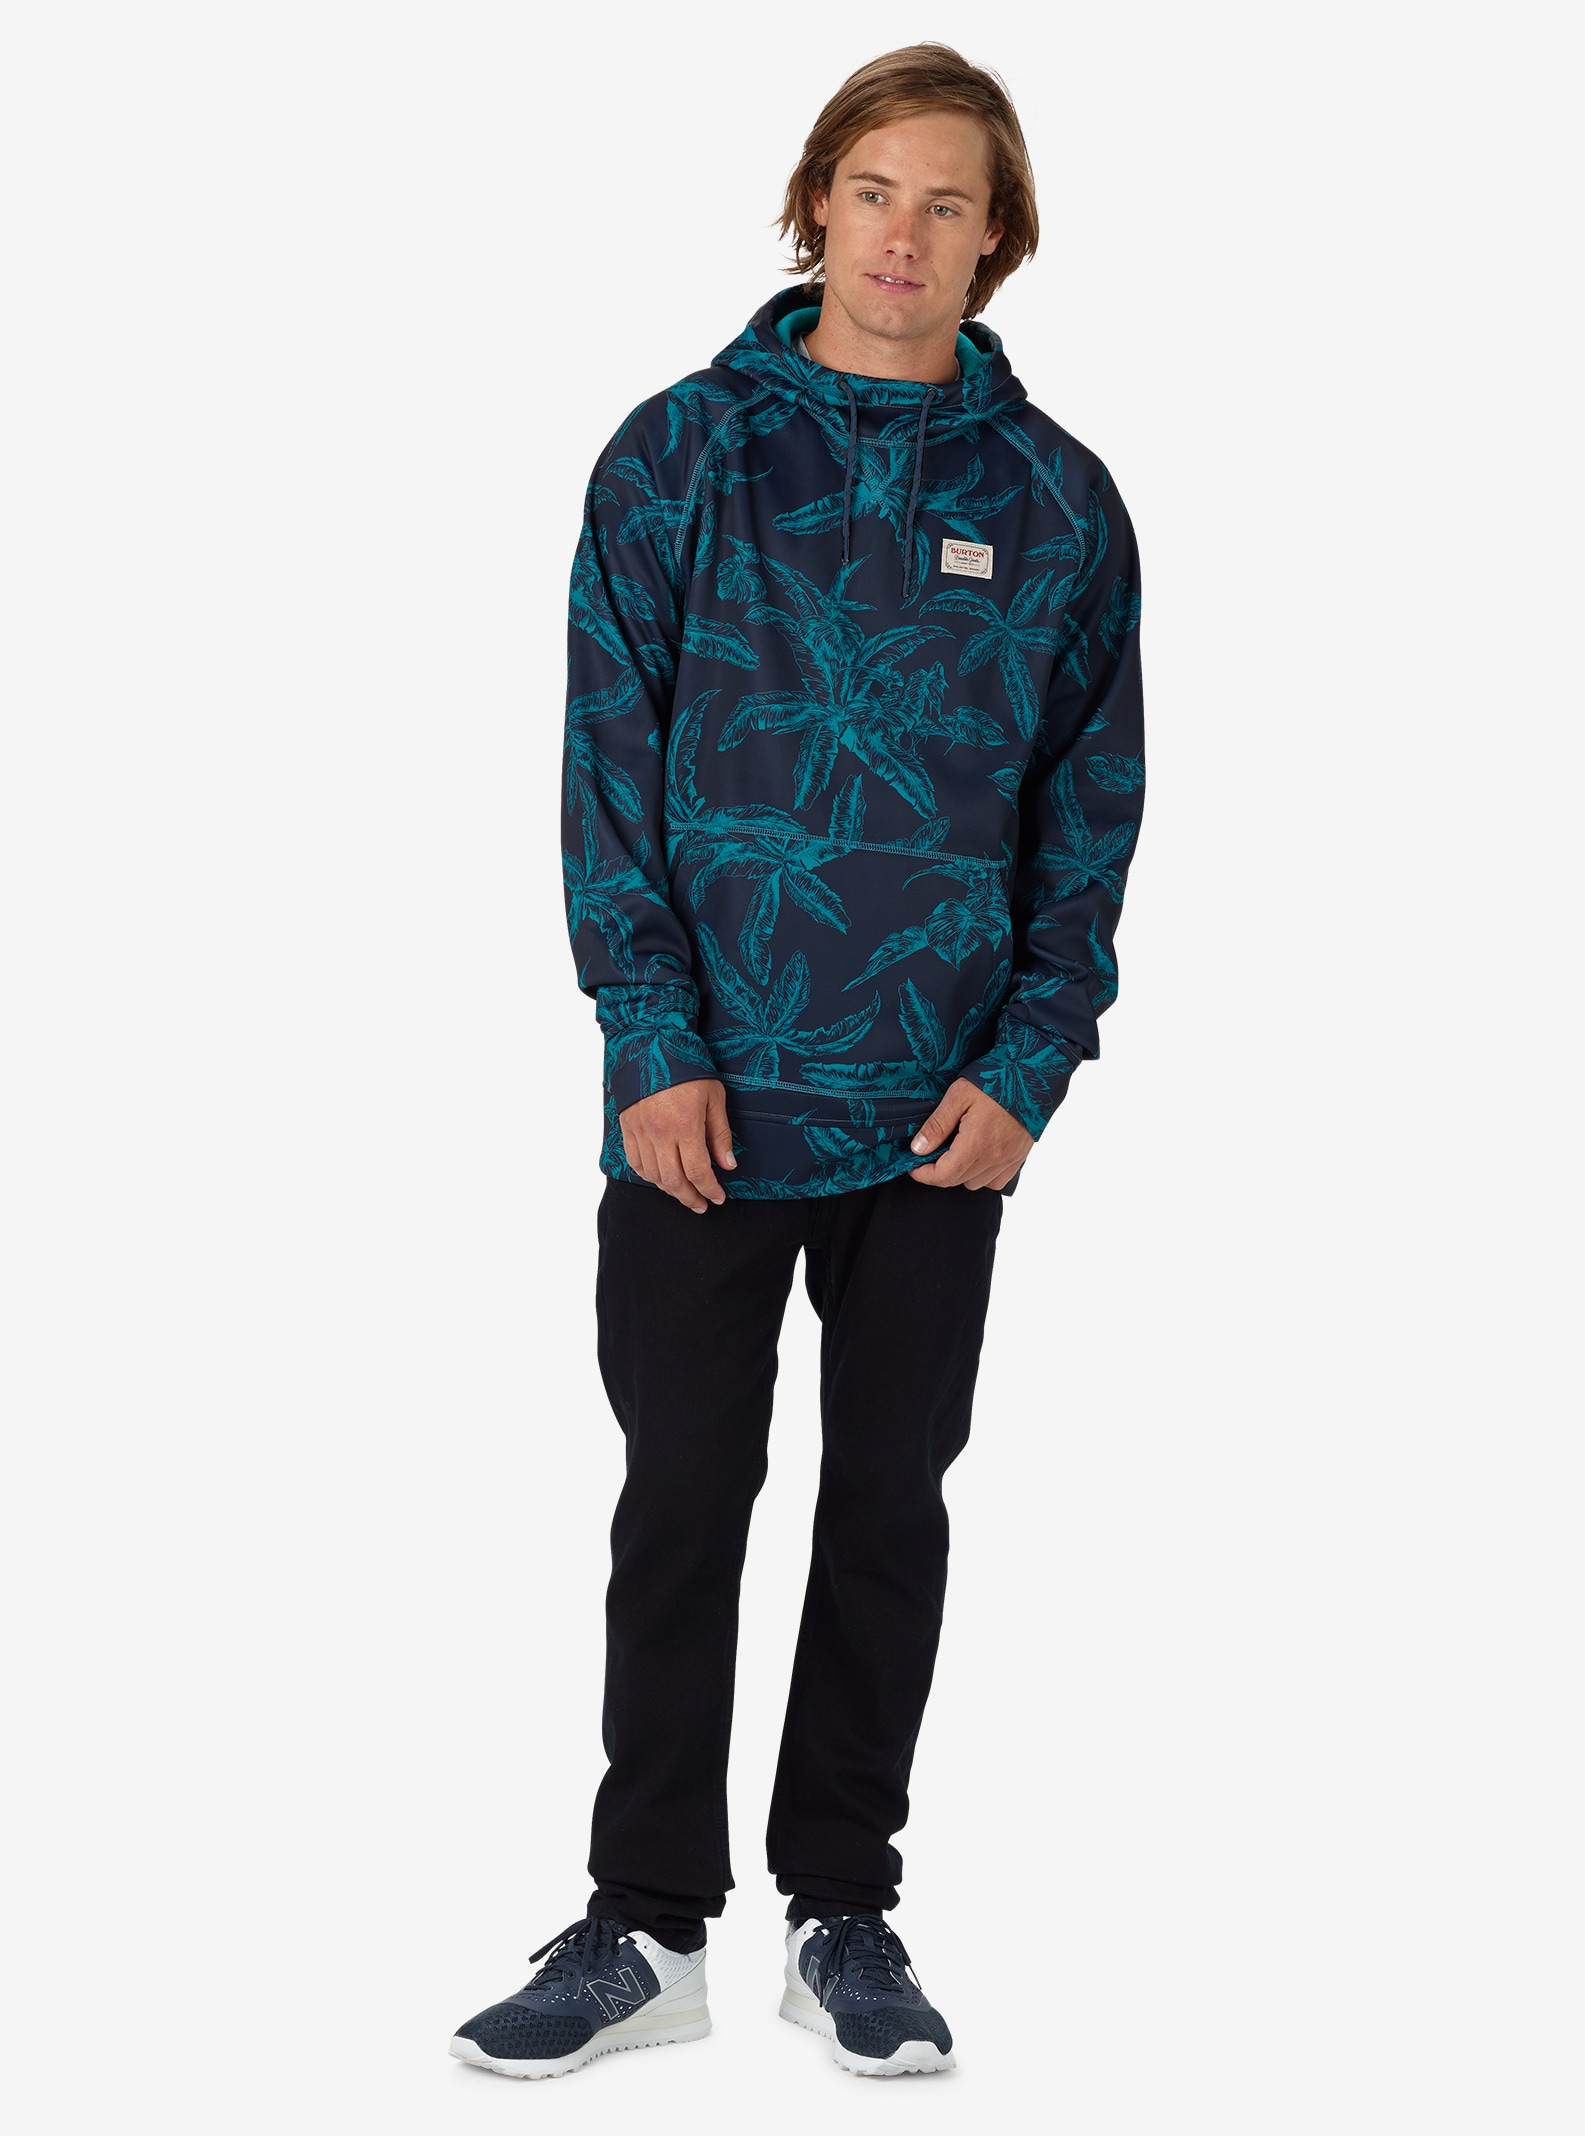 Burton Crown Bonded Pullover Hoodie shown in Eclipse Tropical